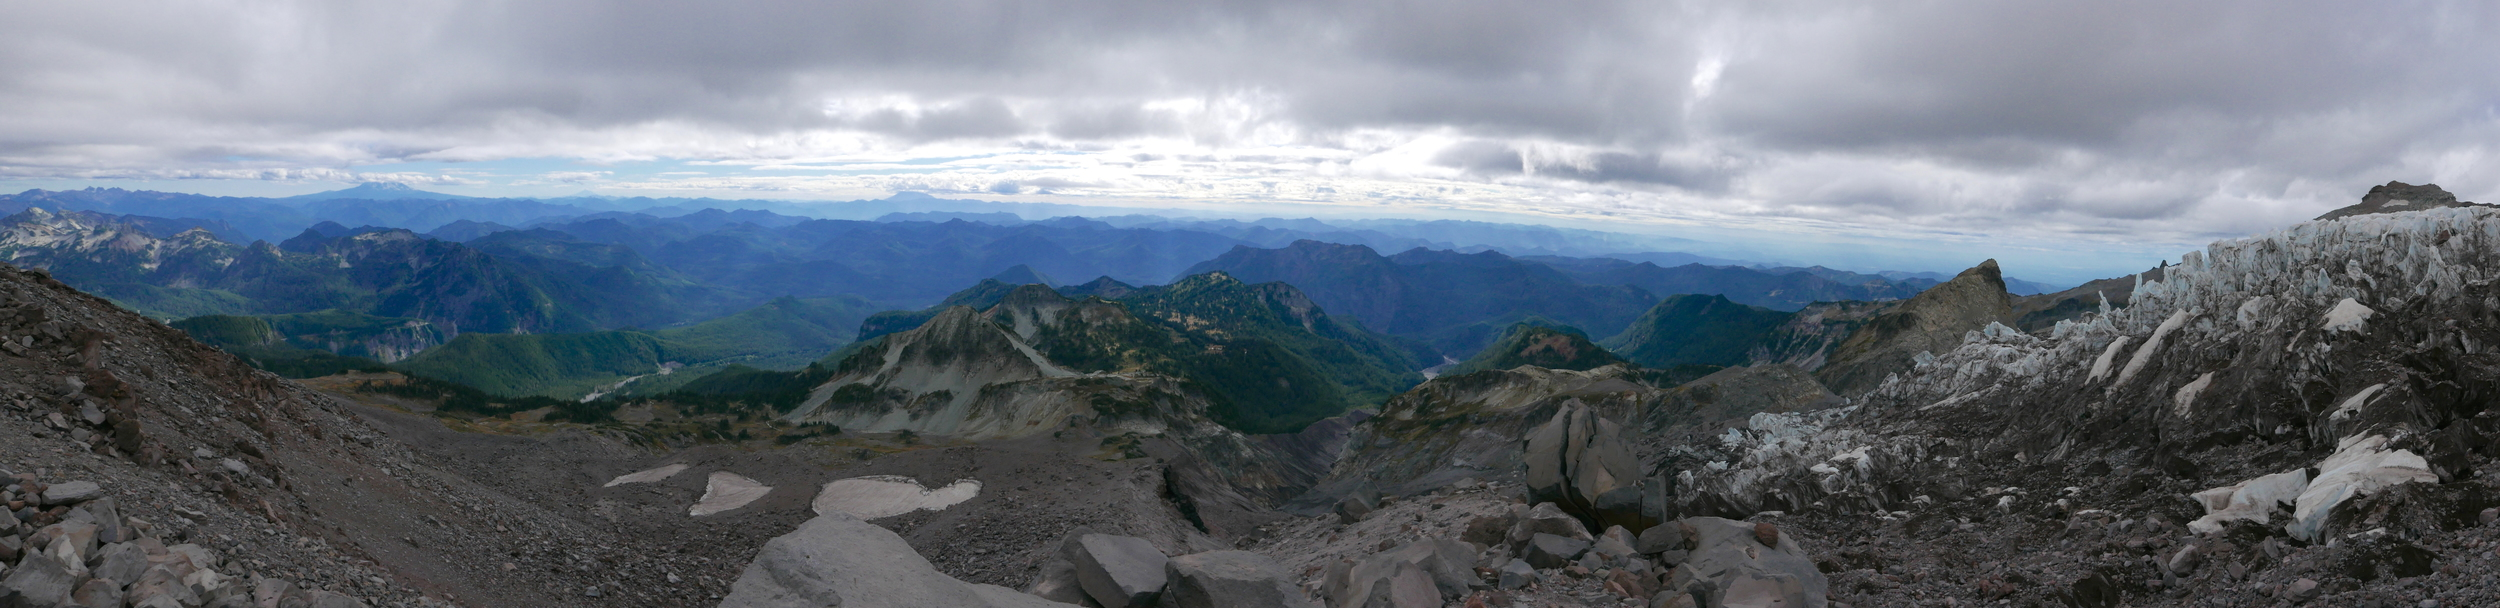 pano on the Success Divide at 7800'